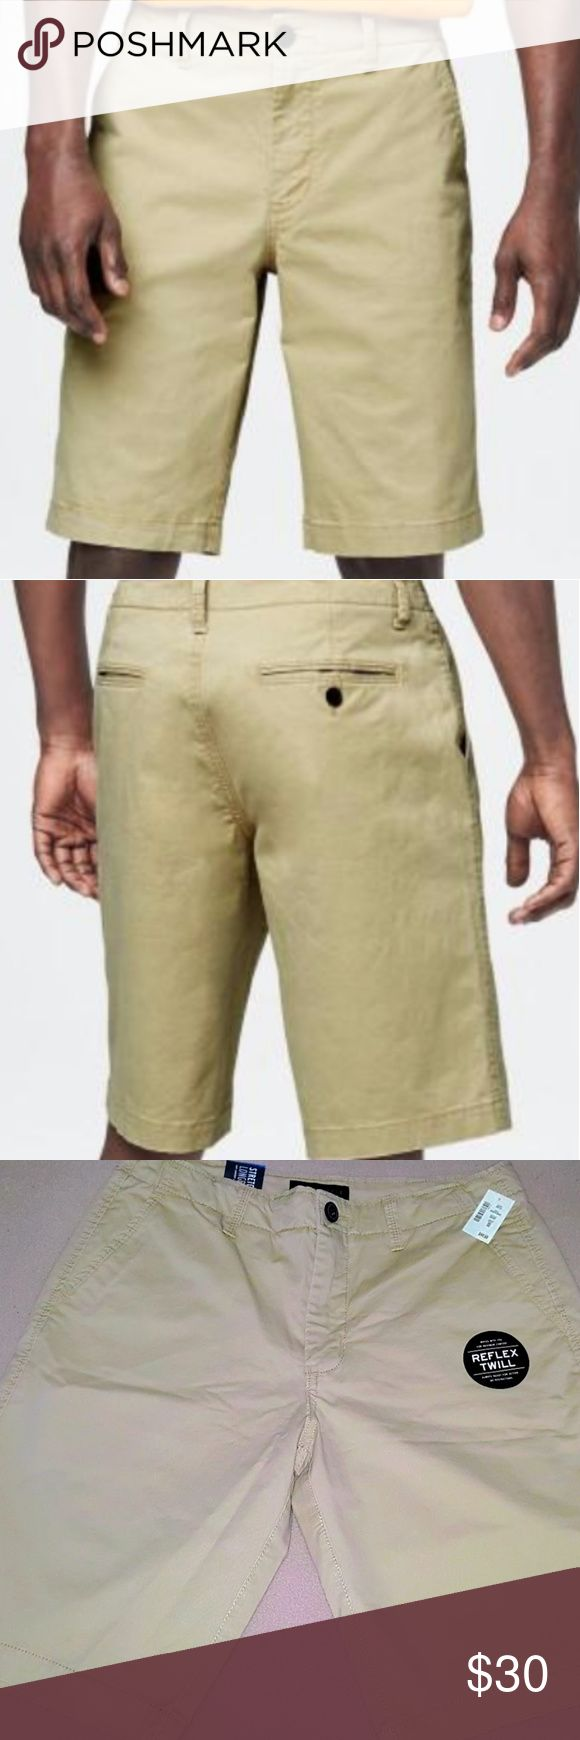 """Aeropostale Longboard (32W) Men's Shorts - NWT Aeropostale - Men's Solid Reflex Longboard Shorts (32w) Brand New W/ Tags  Product Information :  Grab our Solid Reflex Longboard Shorts for a laid-back look that'll take you through the warmer months! The soft fabric is light, stretchy and comfy, and flat pockets add classic appeal.  - Brand : Aeropostale - Size : 32 Waist - Color : Beige - Authentic fit. - Approx. inseam: 11.5""""; Rise: 11"""" - Style: 8968. - Fabric : 97% cotton, 3% spandex…"""